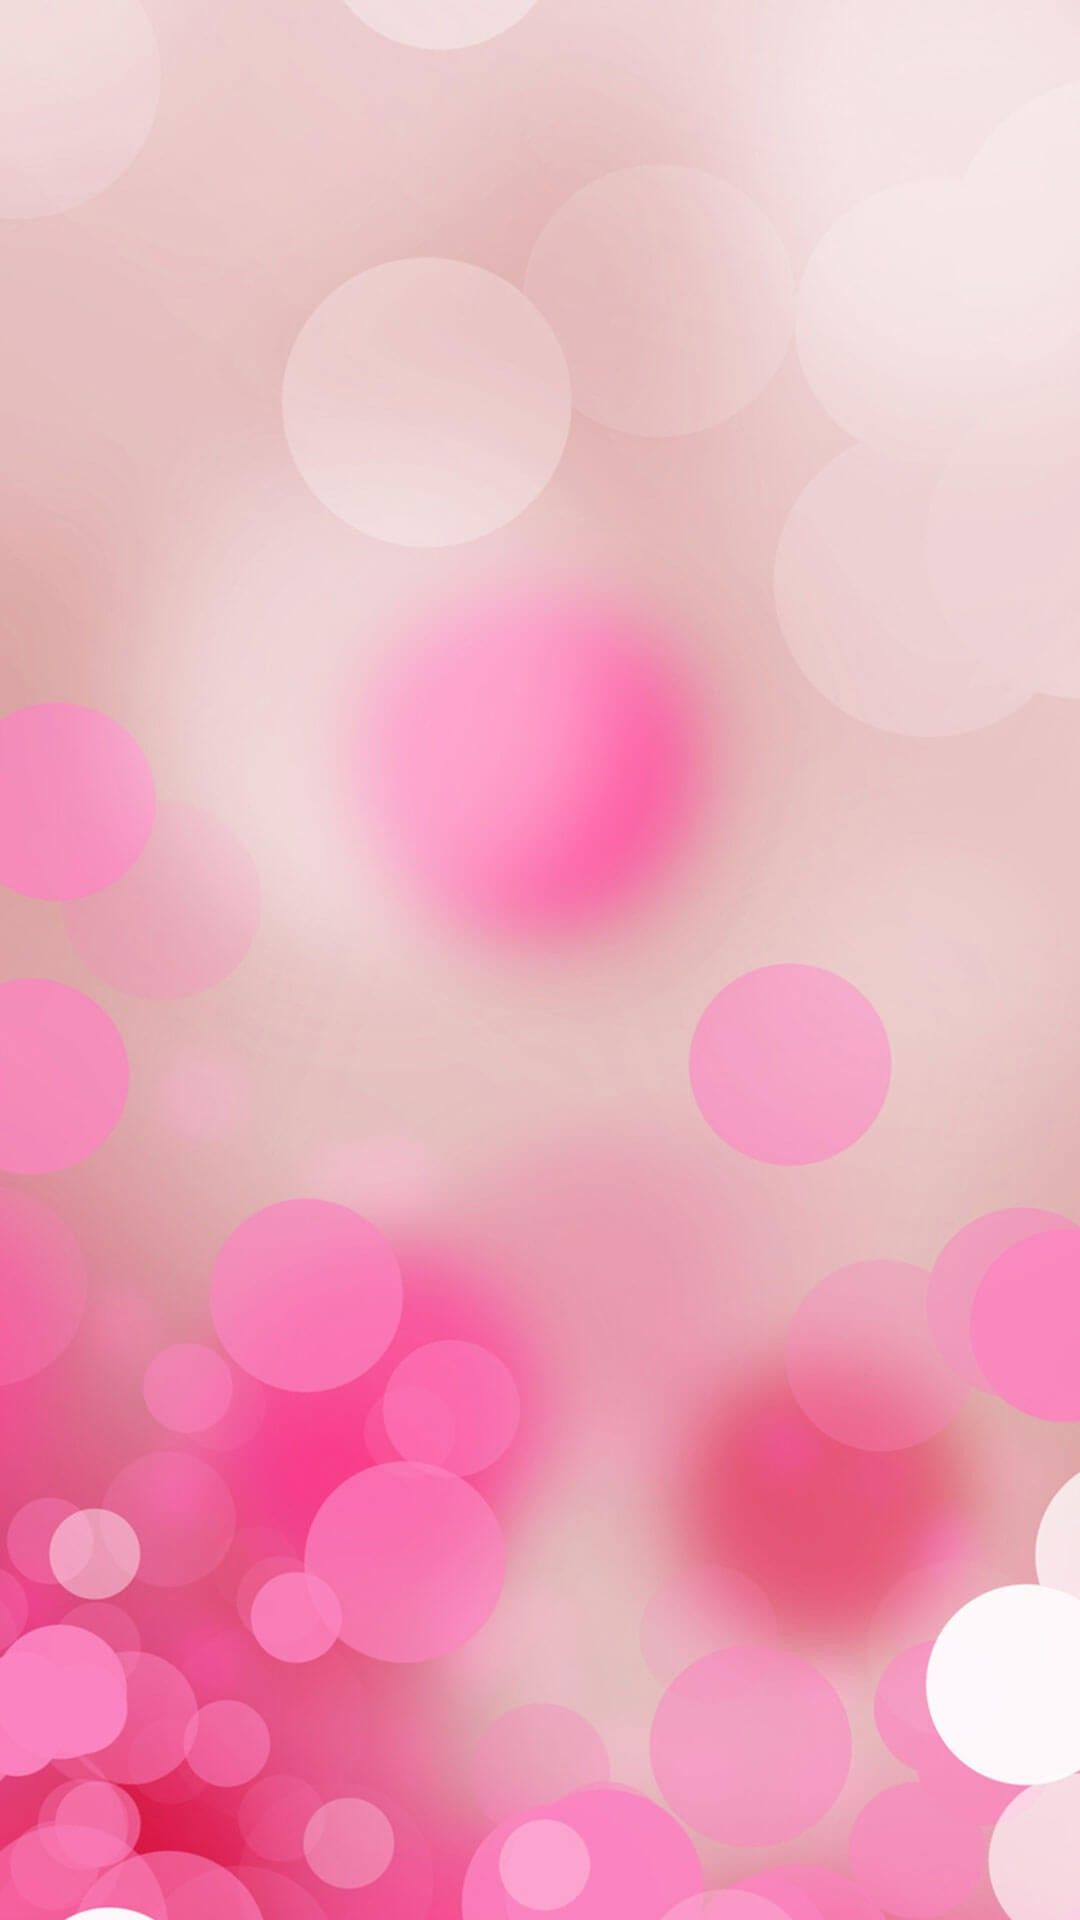 Adorable Girly Wallpapers Top Free Adorable Girly Backgrounds